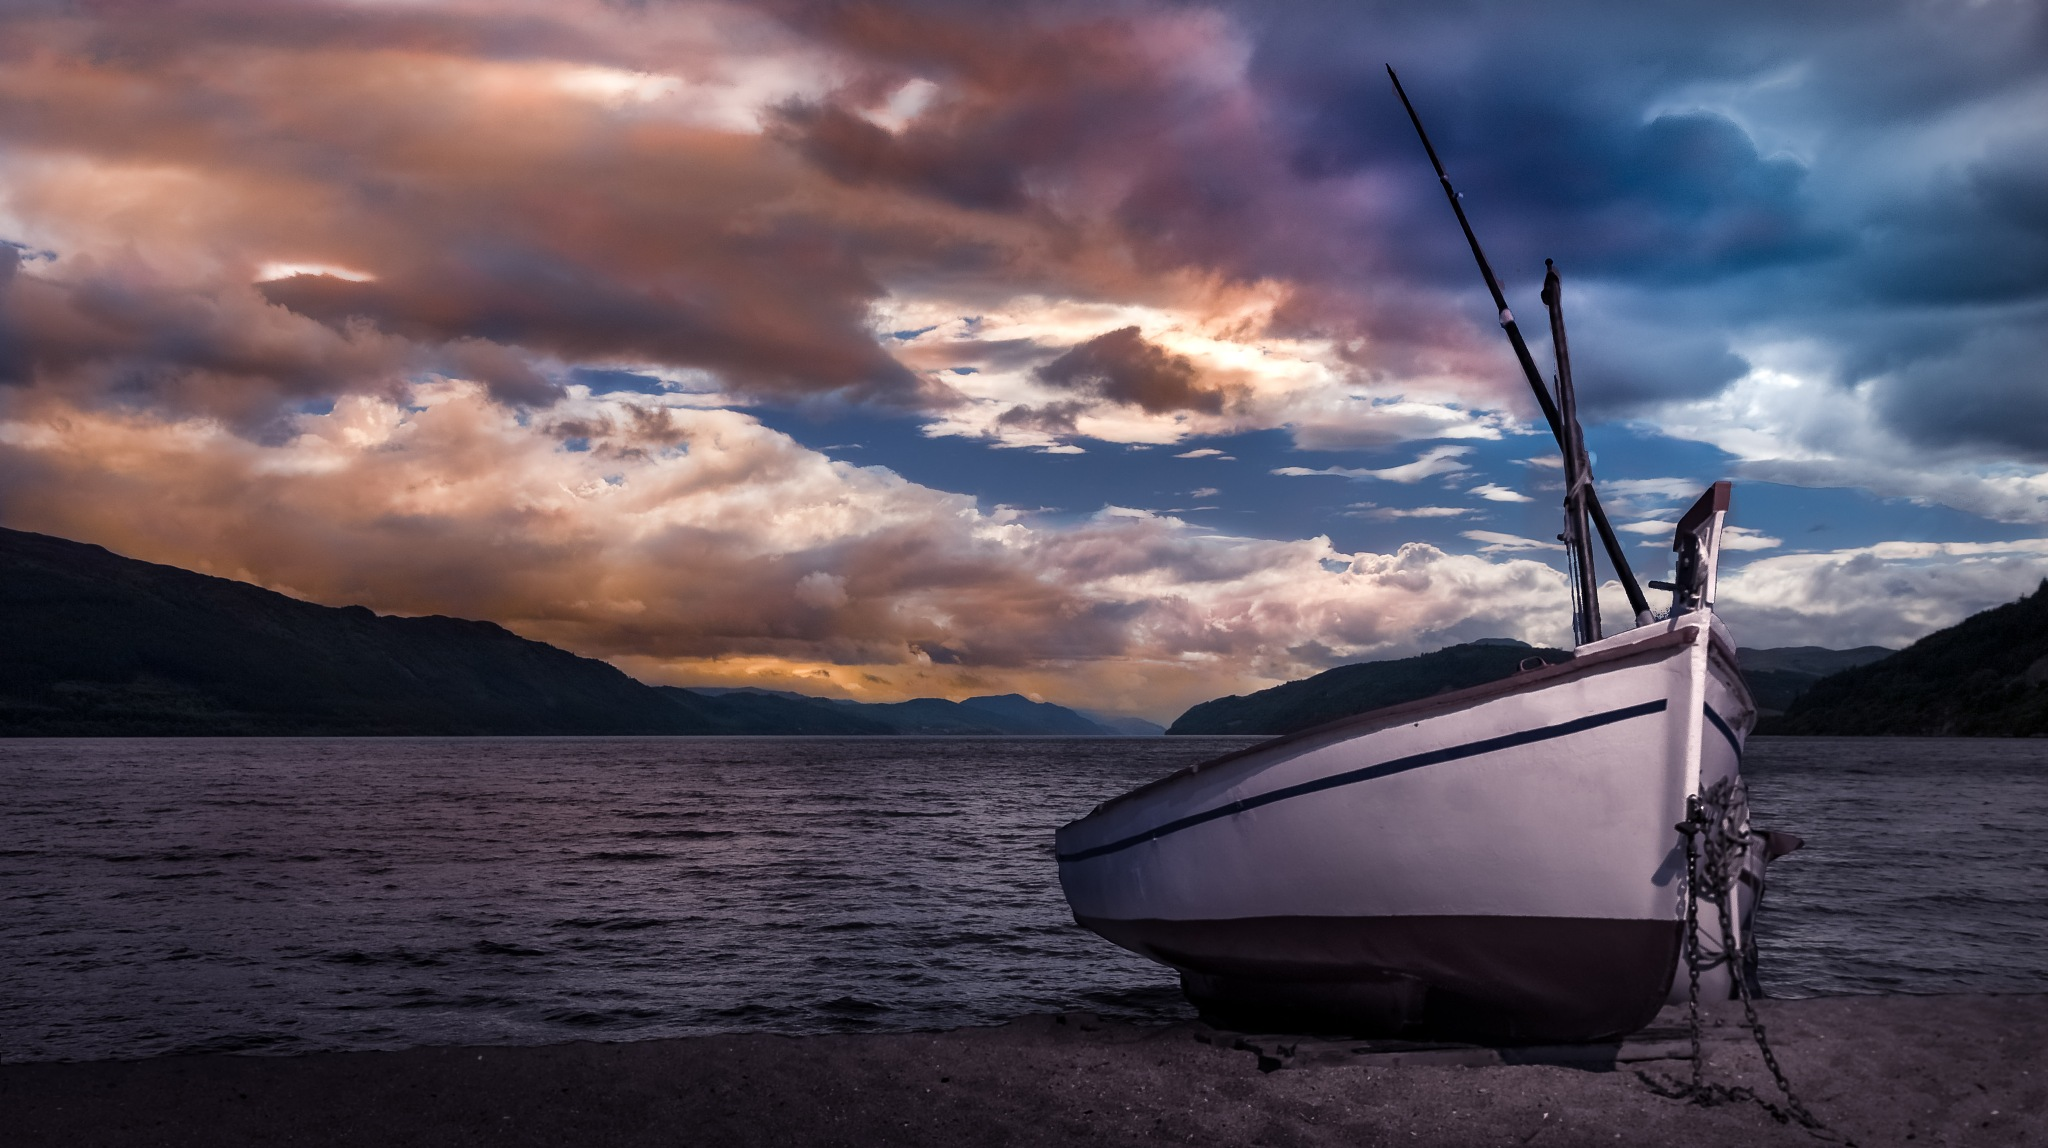 The boat under the sky by Alec Rain